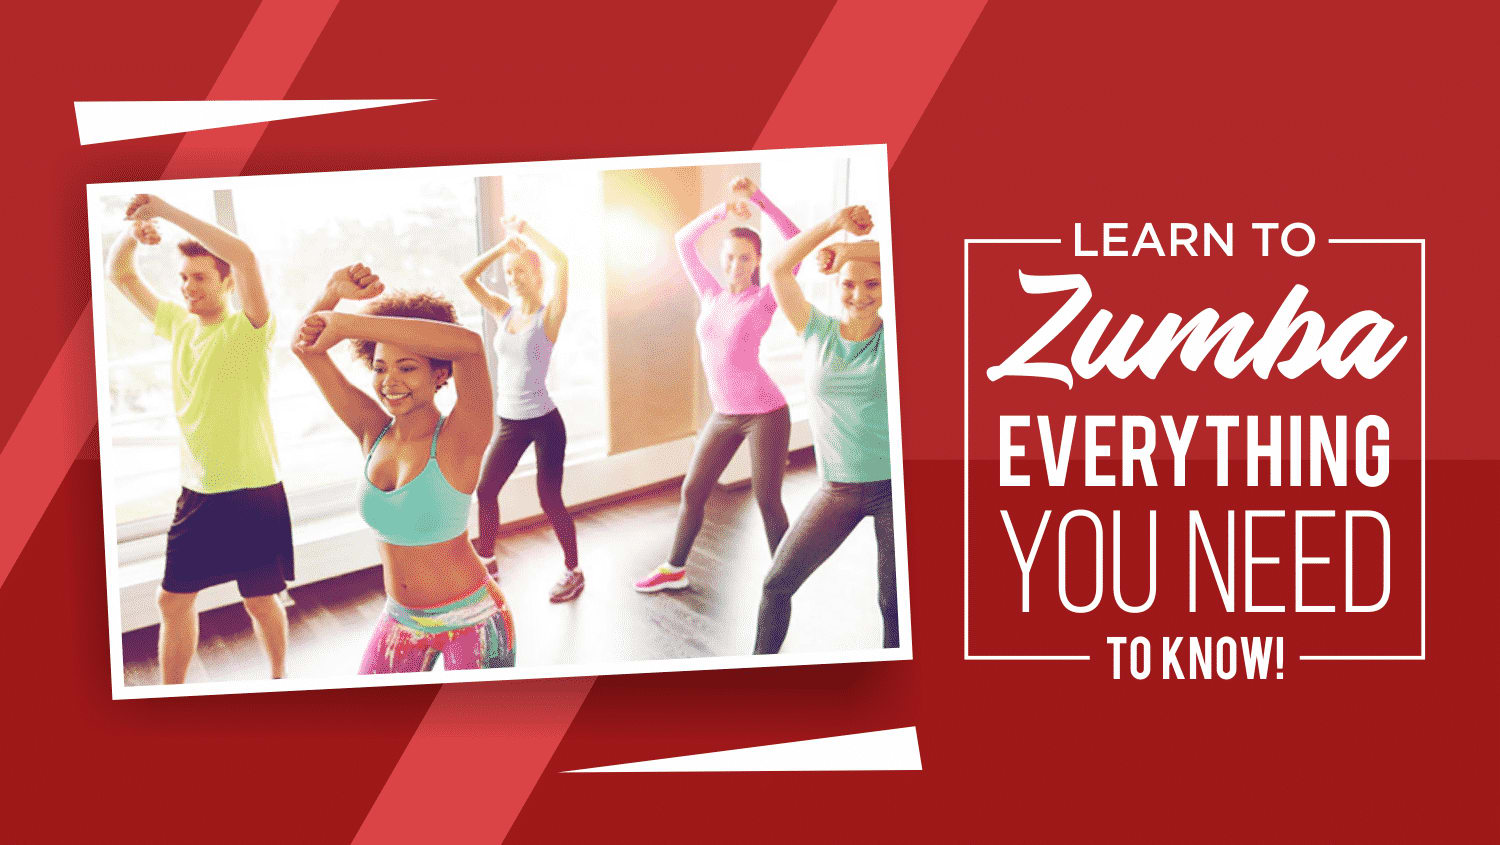 learn to zumba, zumba fitness, choreo n concept, online fitness classes, everything you need to know about zumba fitness, everything you need to know, fitness guide, exercise ideas, workout plan, ways to exercise